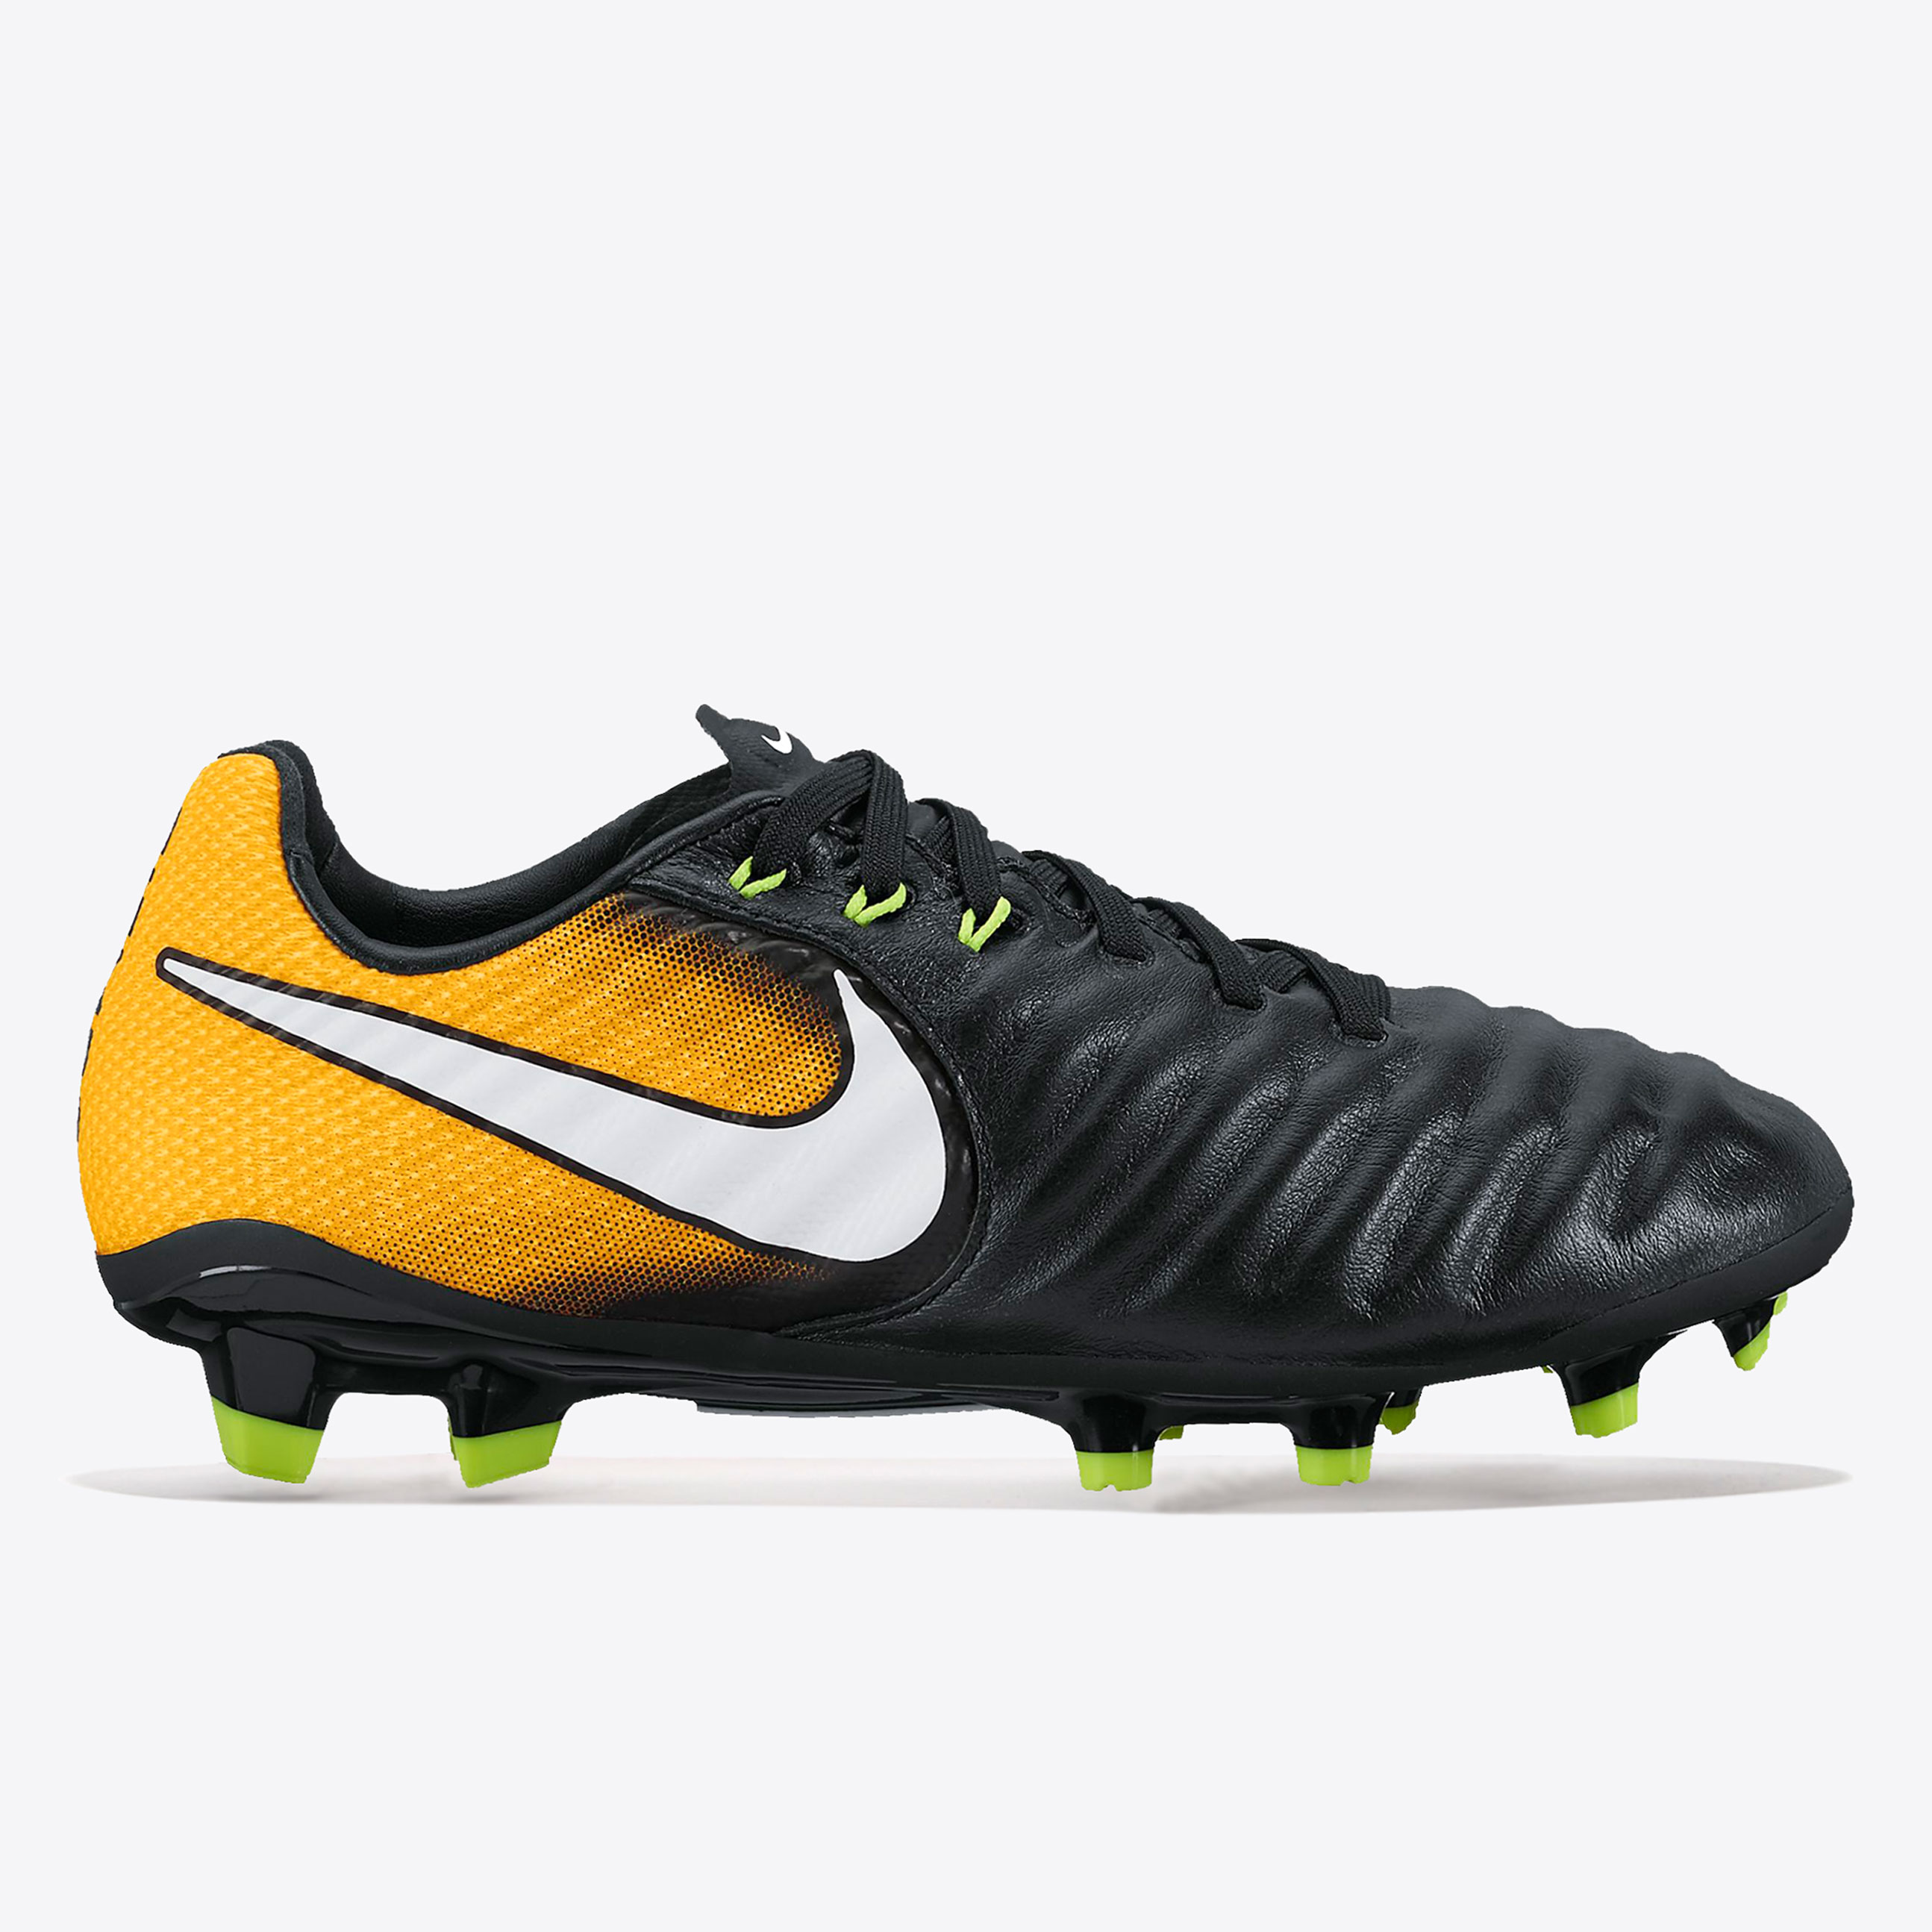 Nike Tiempo Legend VII Firm Ground Football Boots - Black/White/Laser